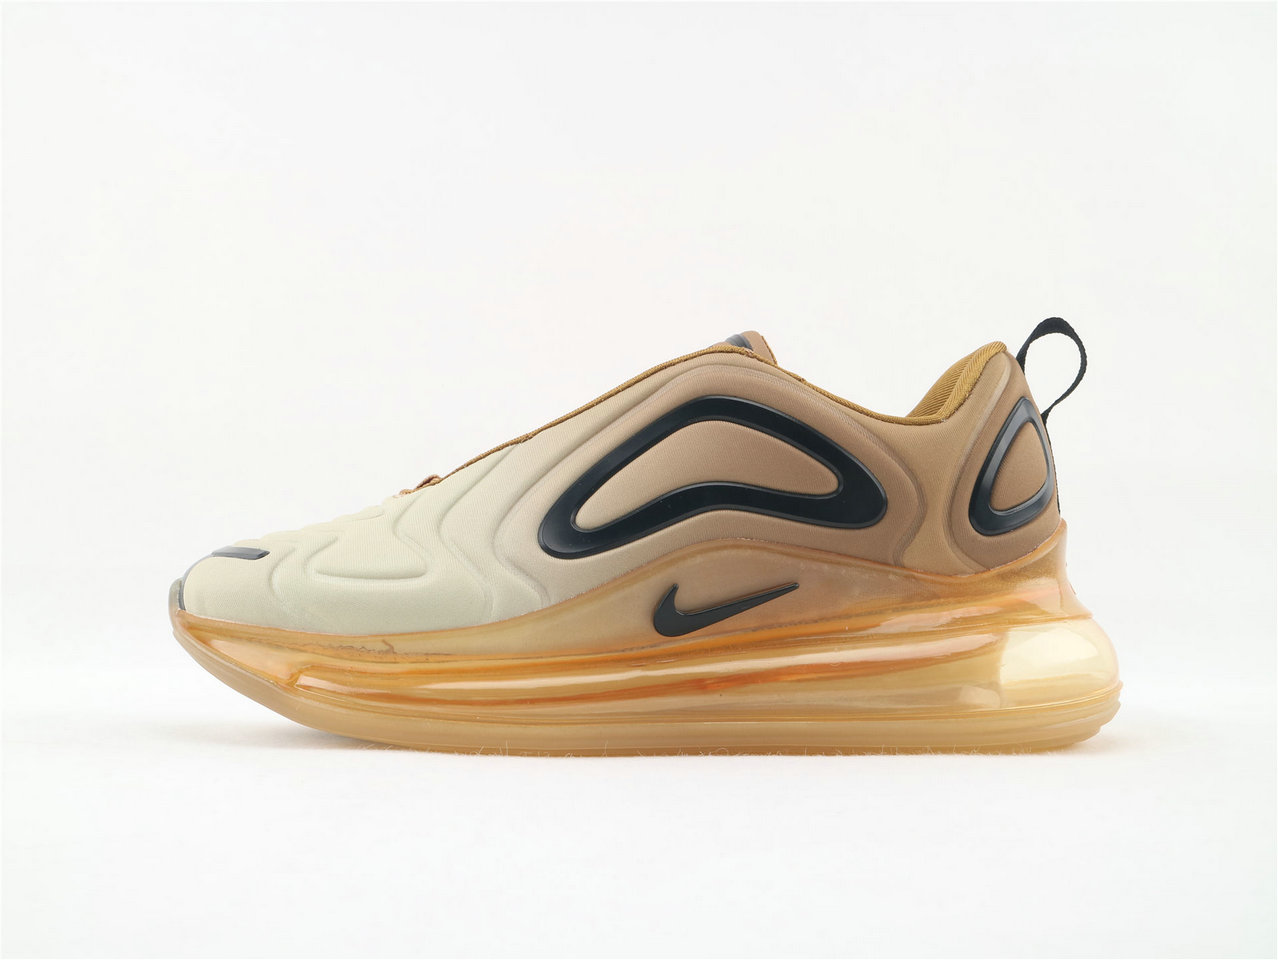 Where To Buy Wholesale Cheap Womens Nike Sportwear Air Max 720 Desert Gold Black AO2924-700 - www.wholesaleflyknit.com